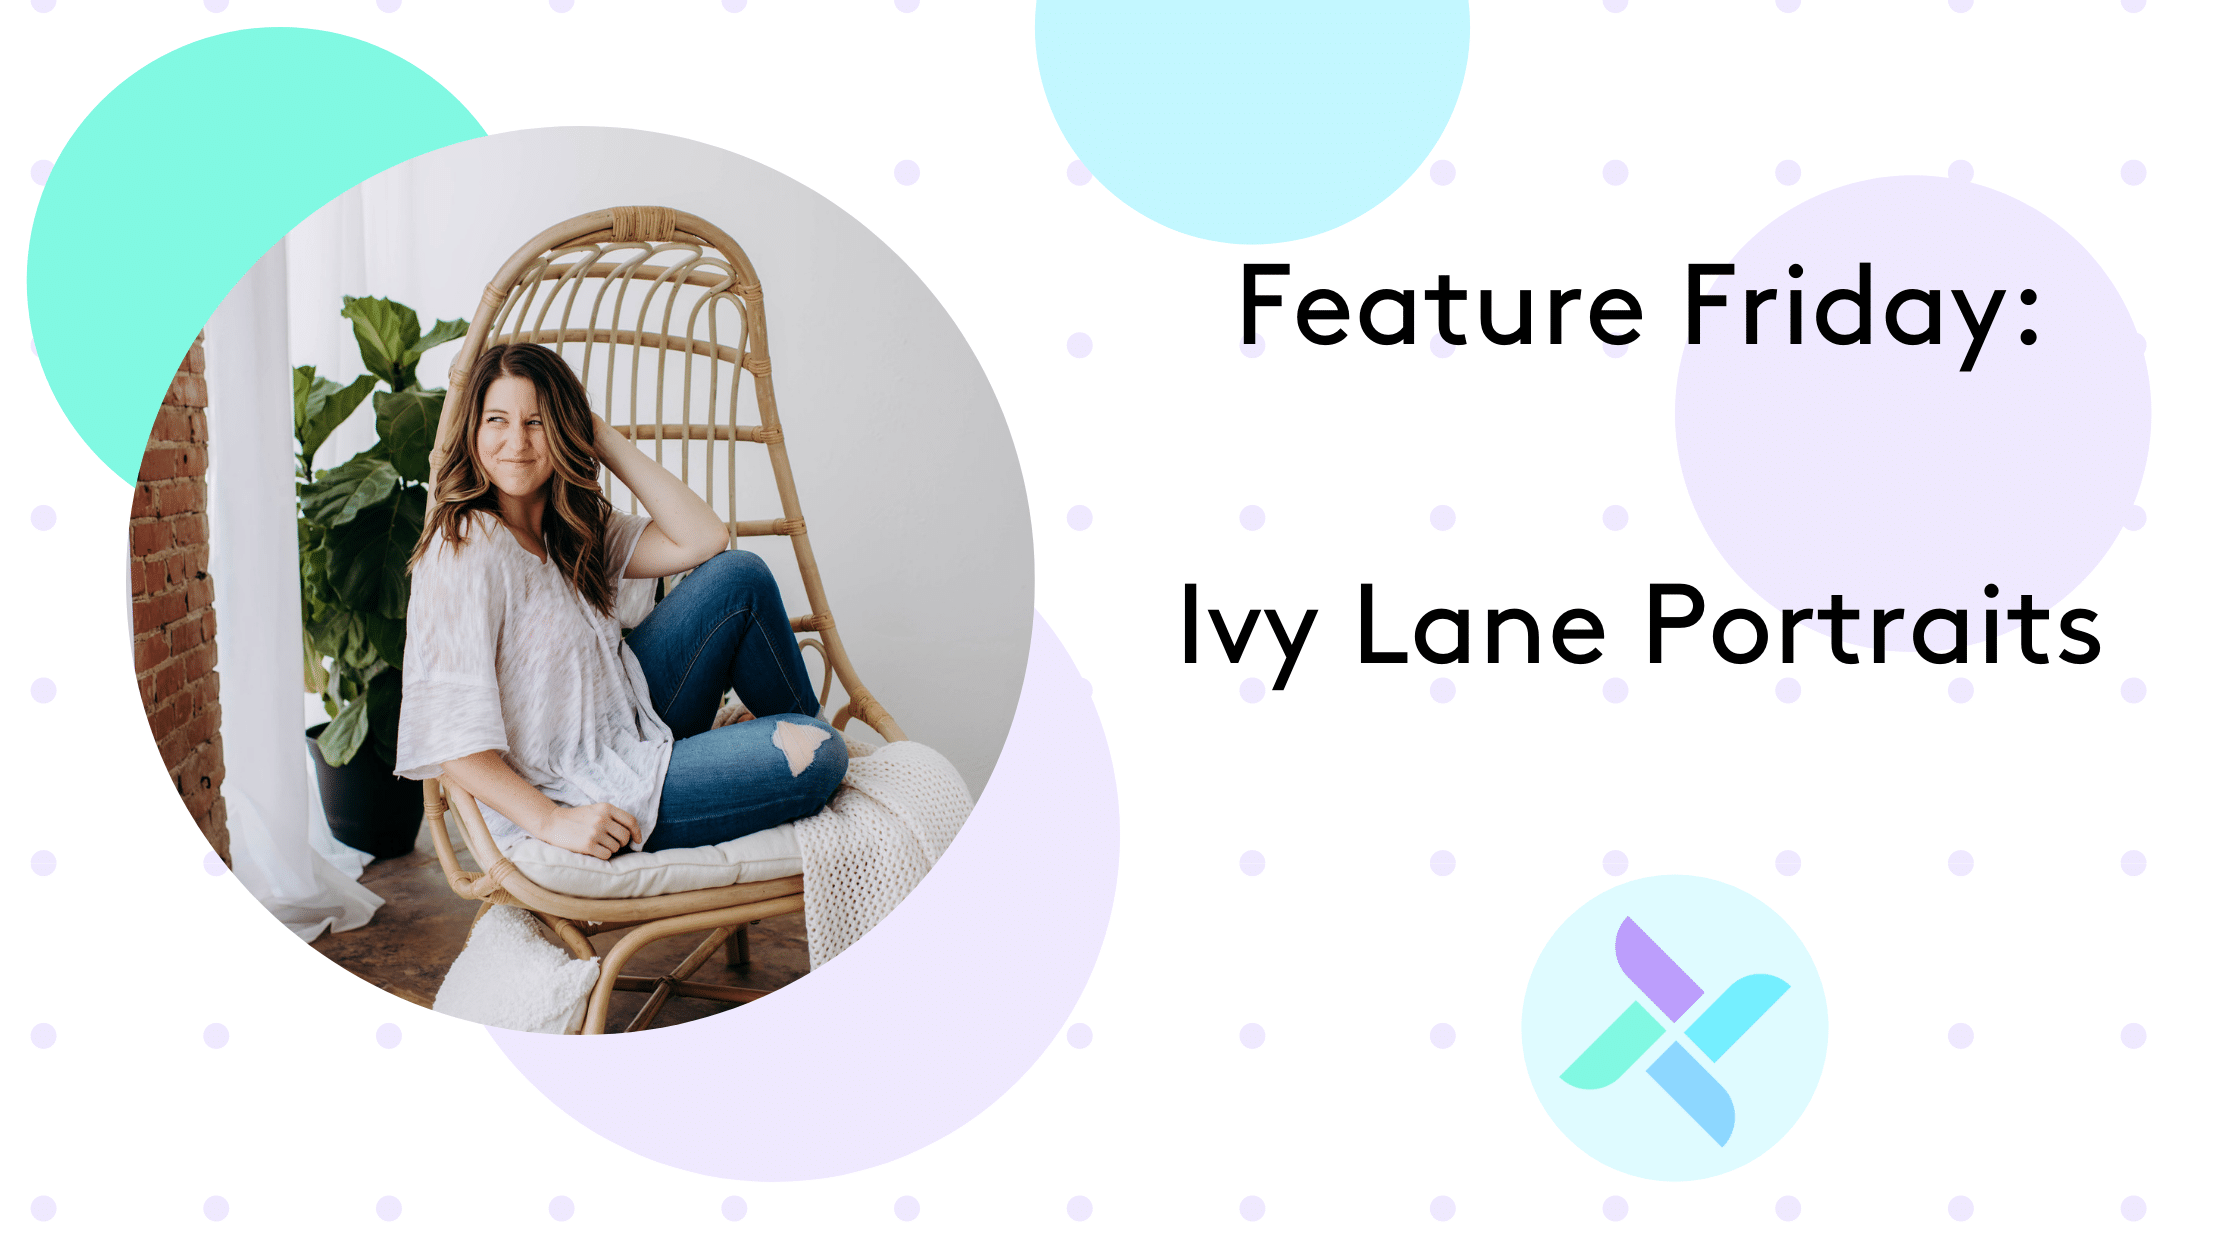 ivy lane portraits feature friday